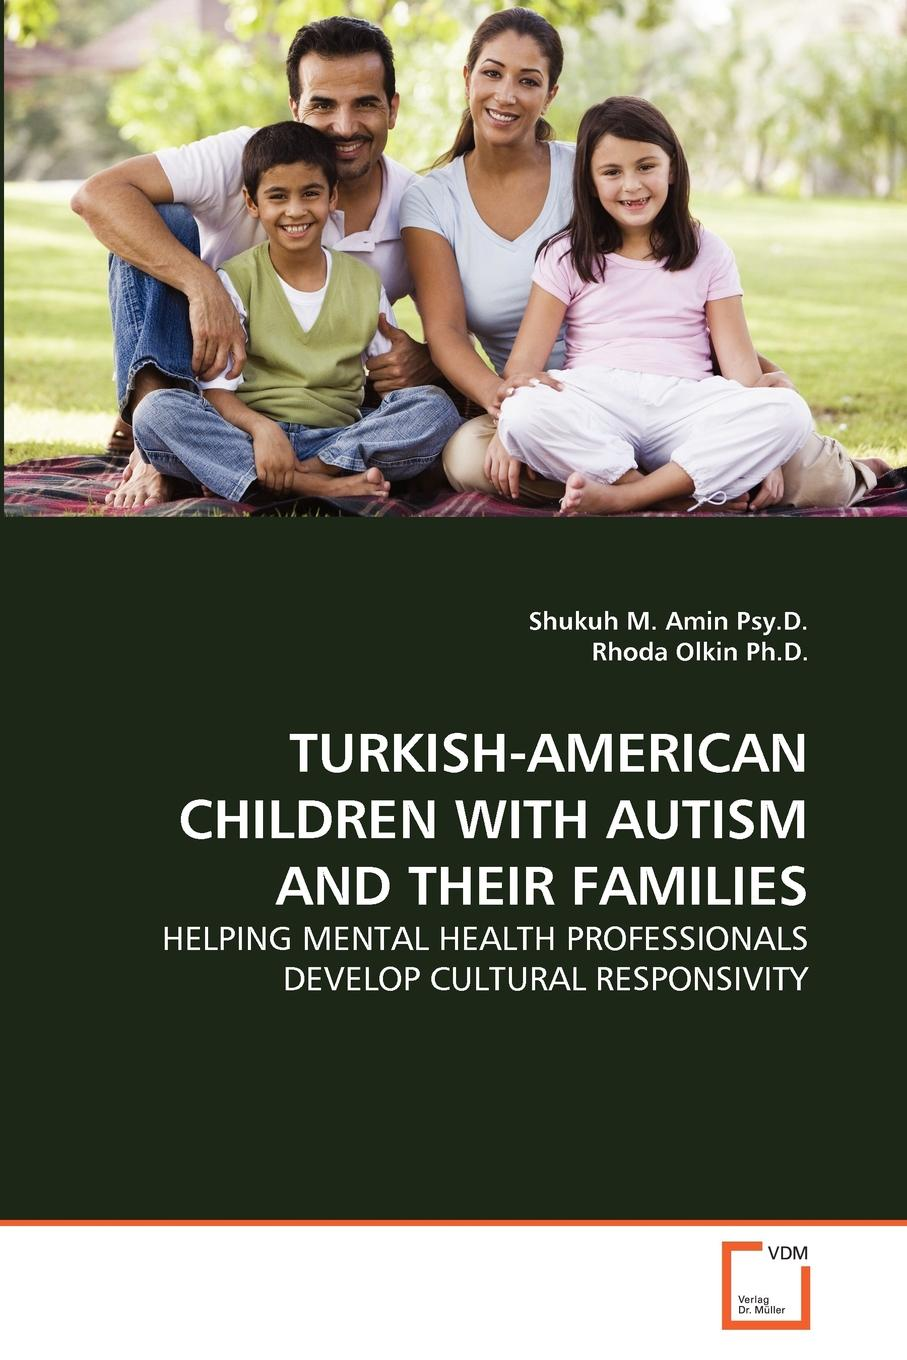 Shukuh M. Amin Psy.D., Rhoda Olkin Ph.D. TURKISH-AMERICAN CHILDREN WITH AUTISM AND THEIR FAMILIES wear blue for autism